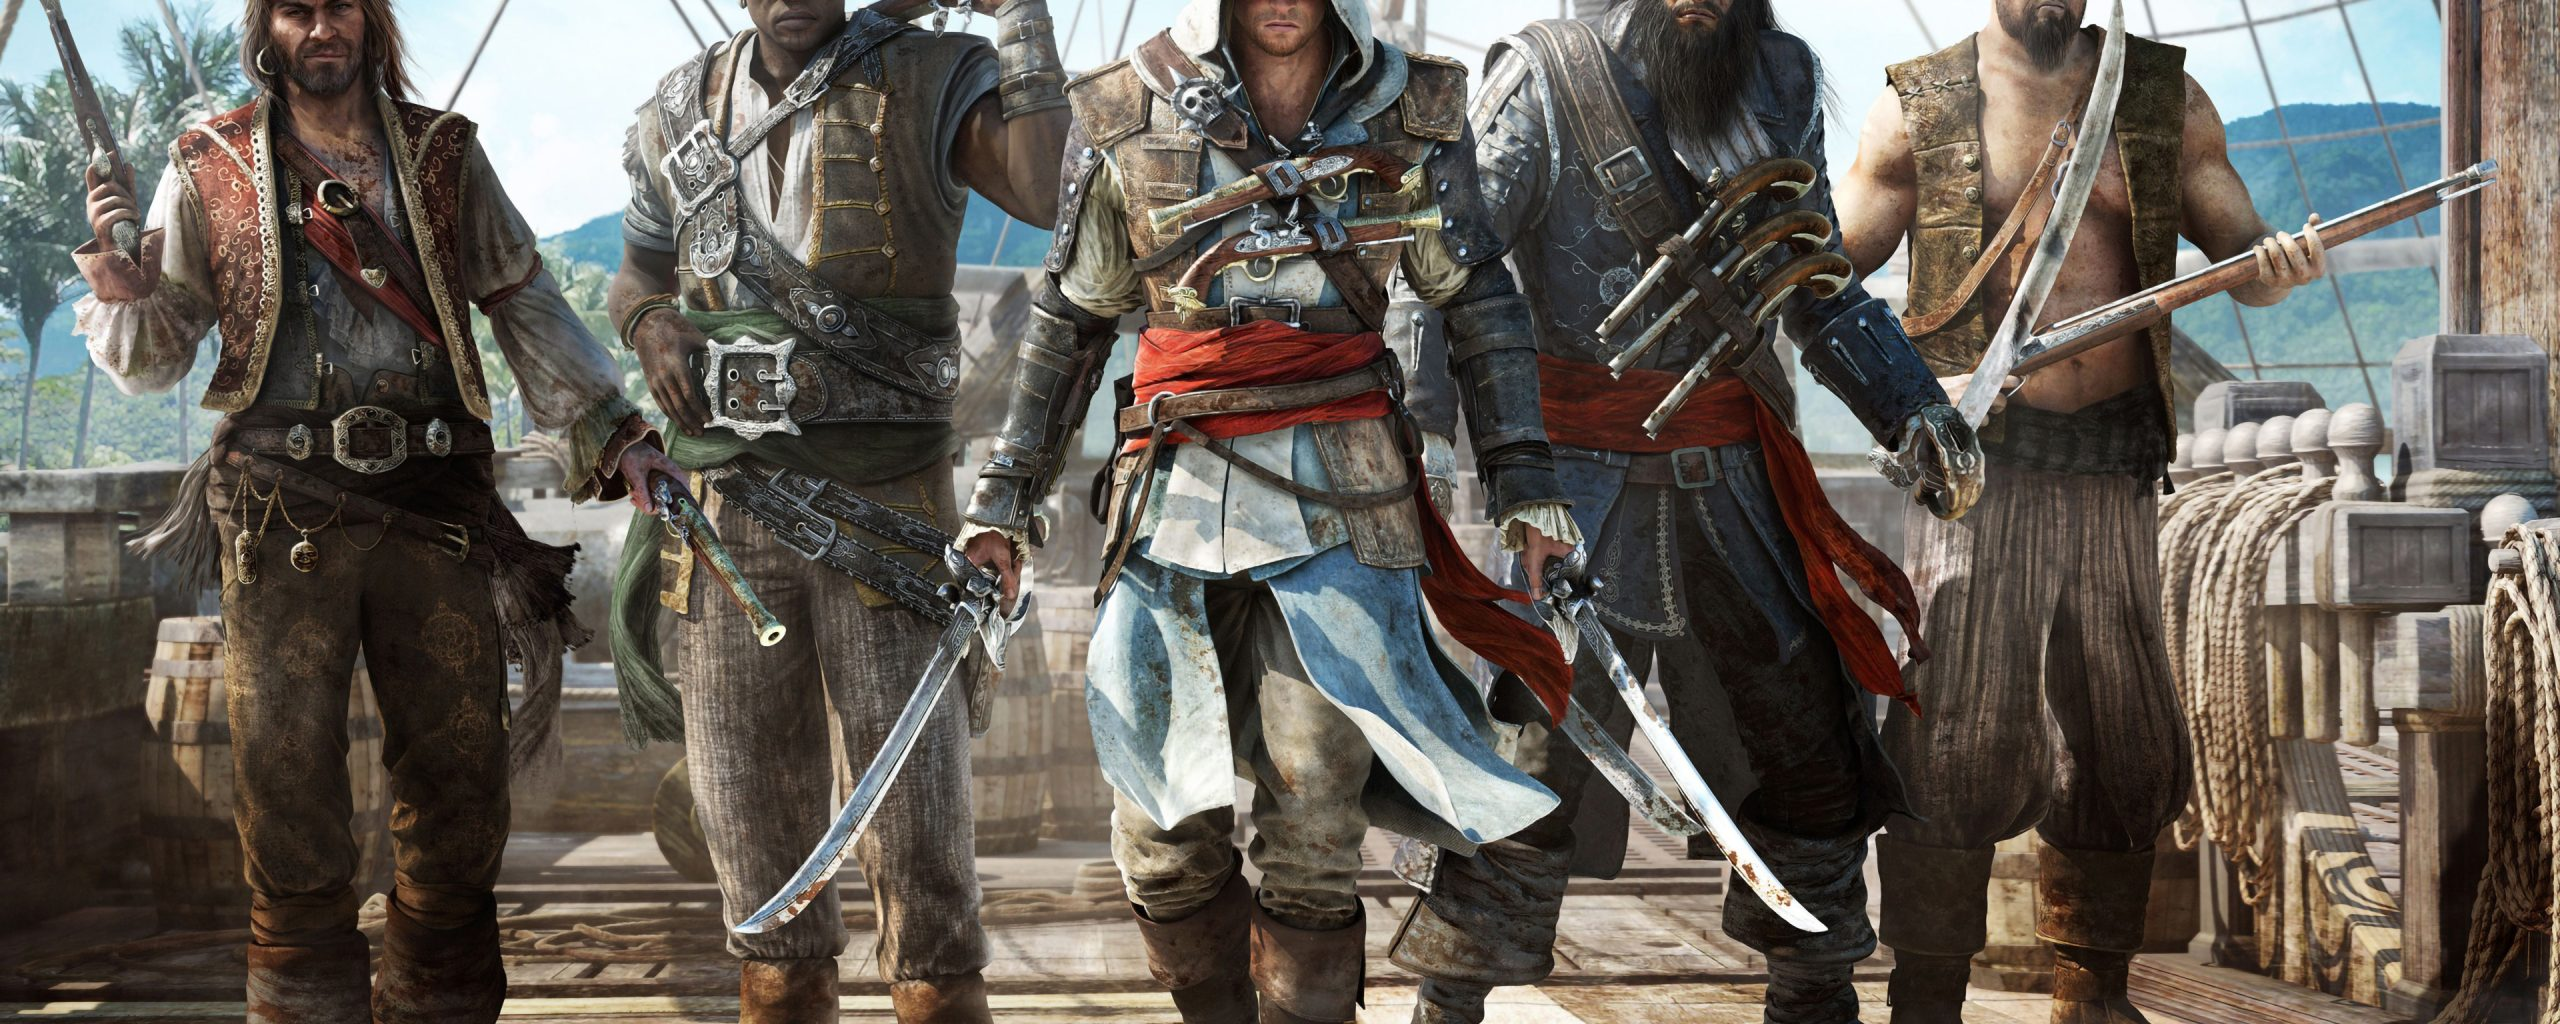 Assassin S Creed 4 Black Flag 4k Wallpaper Best Wallpapers